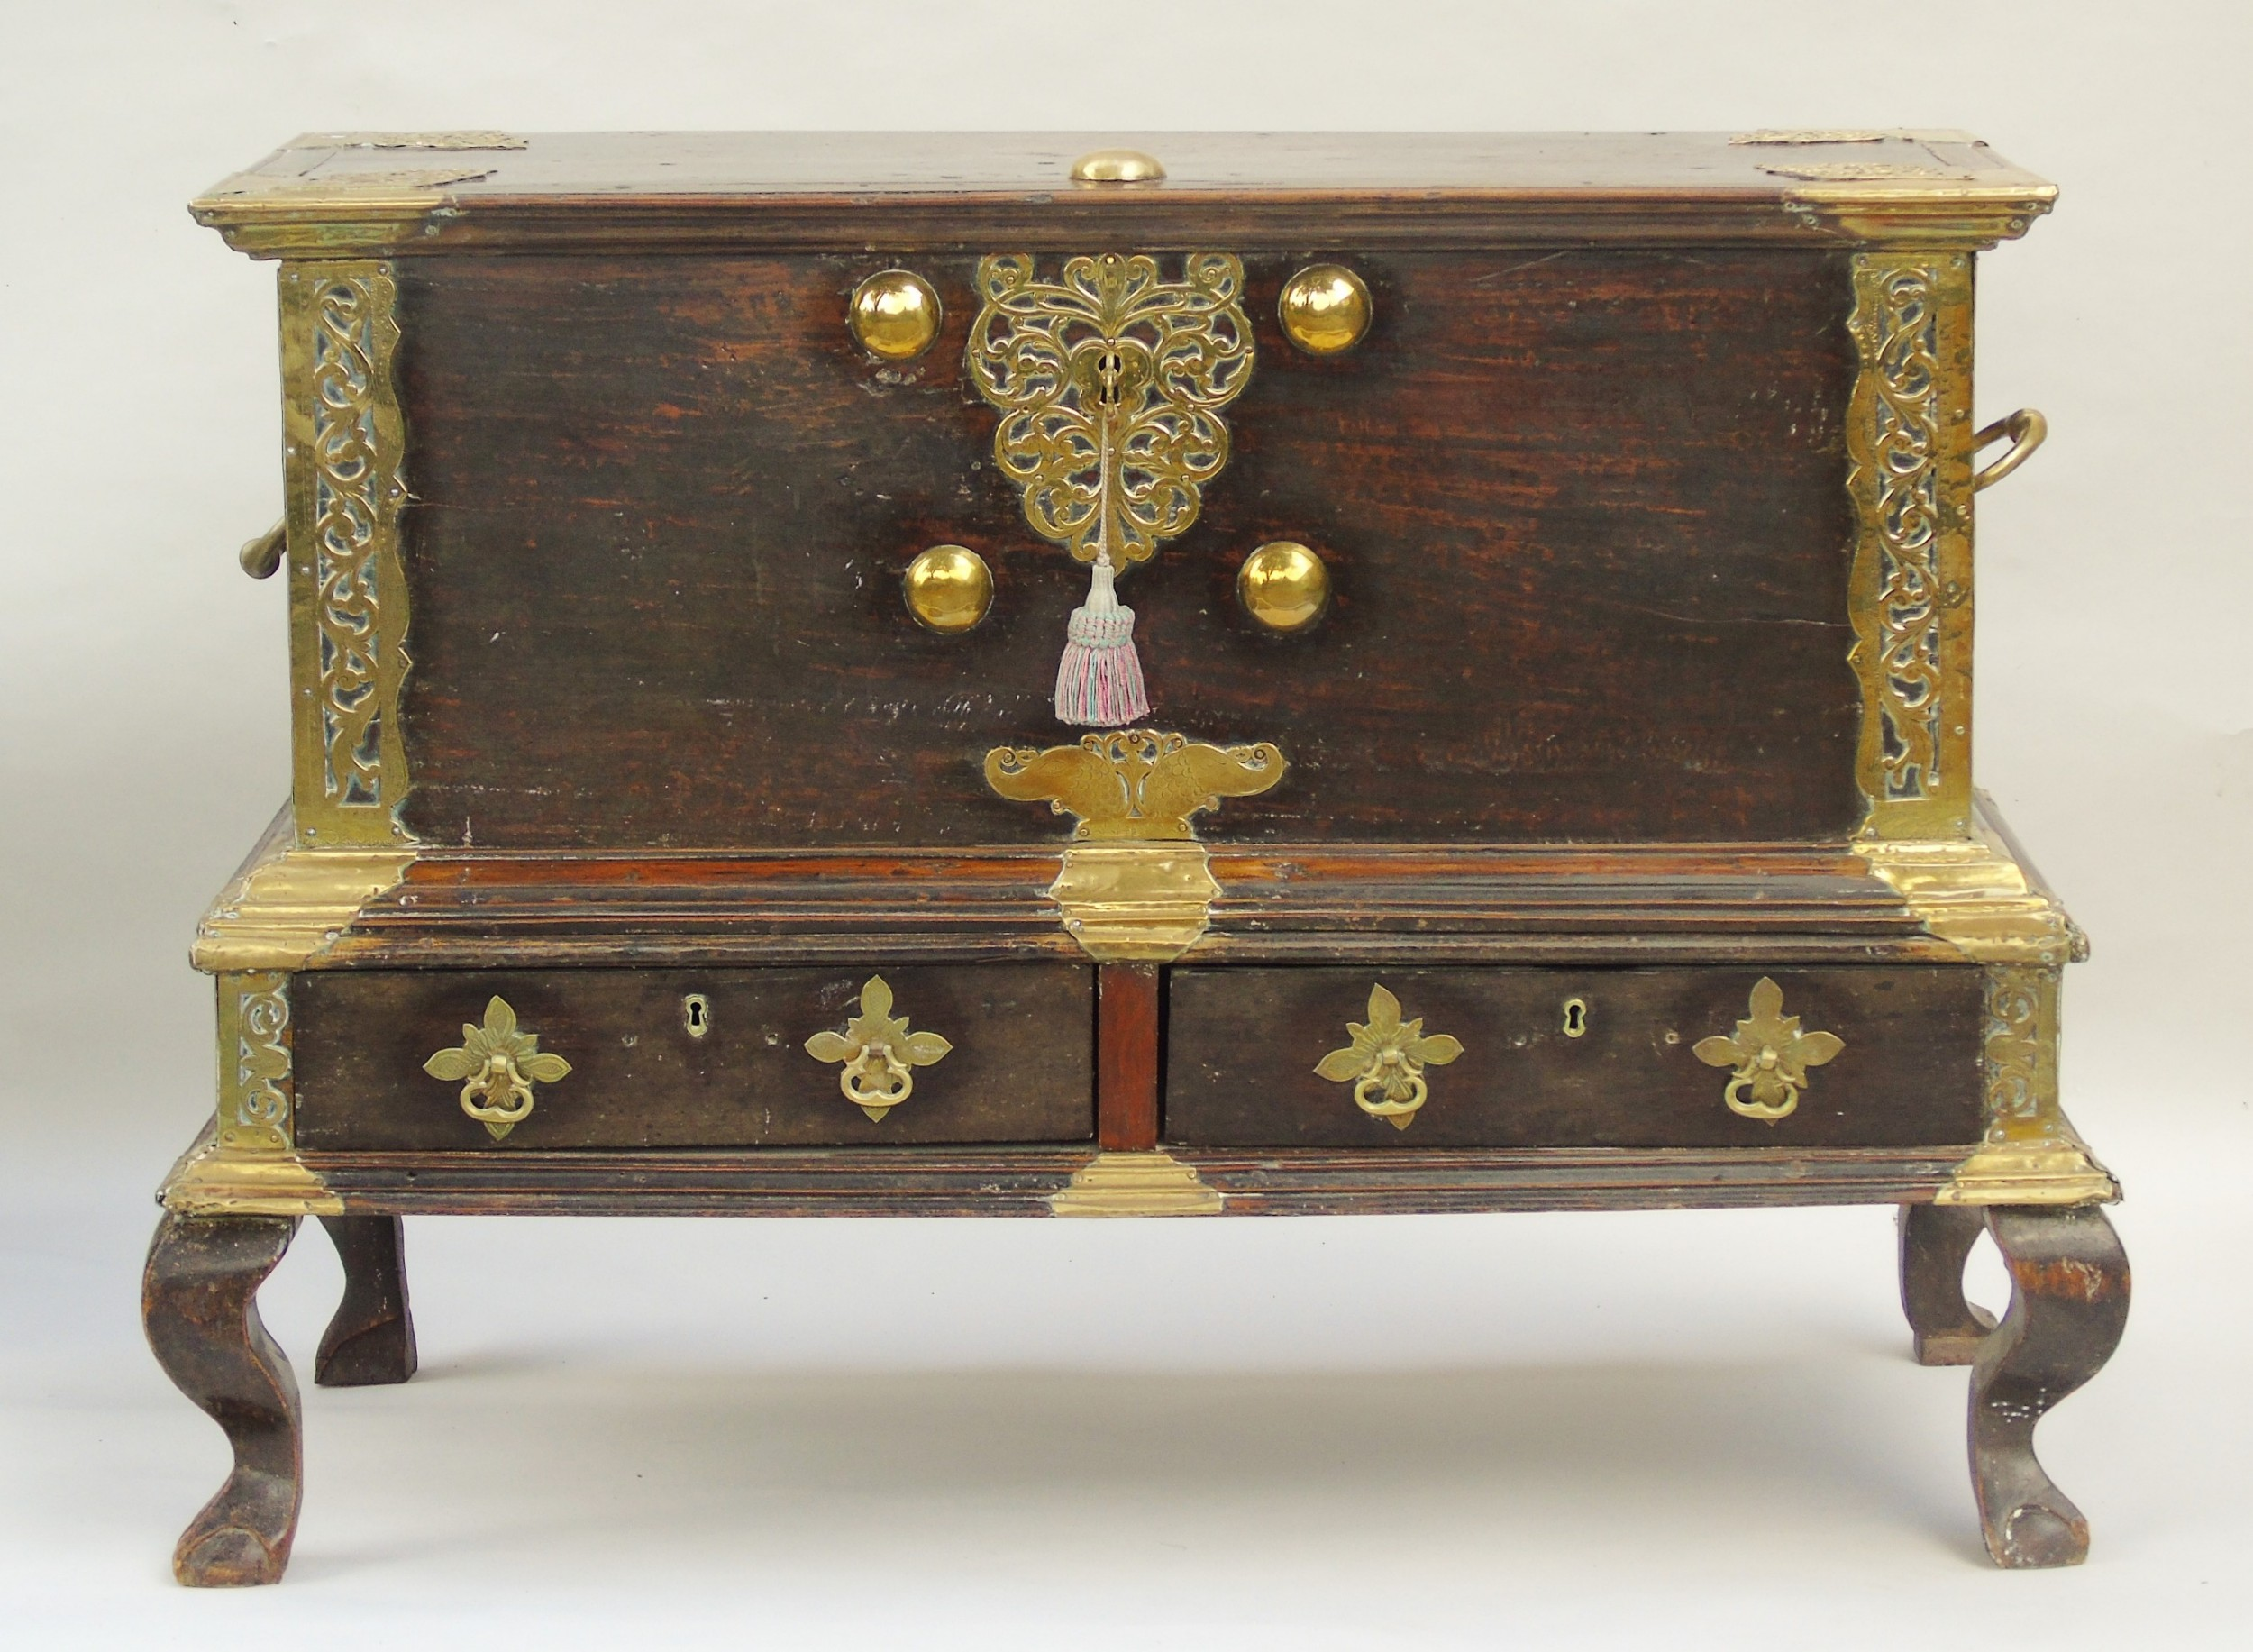 19th century zanzibar chest on stand